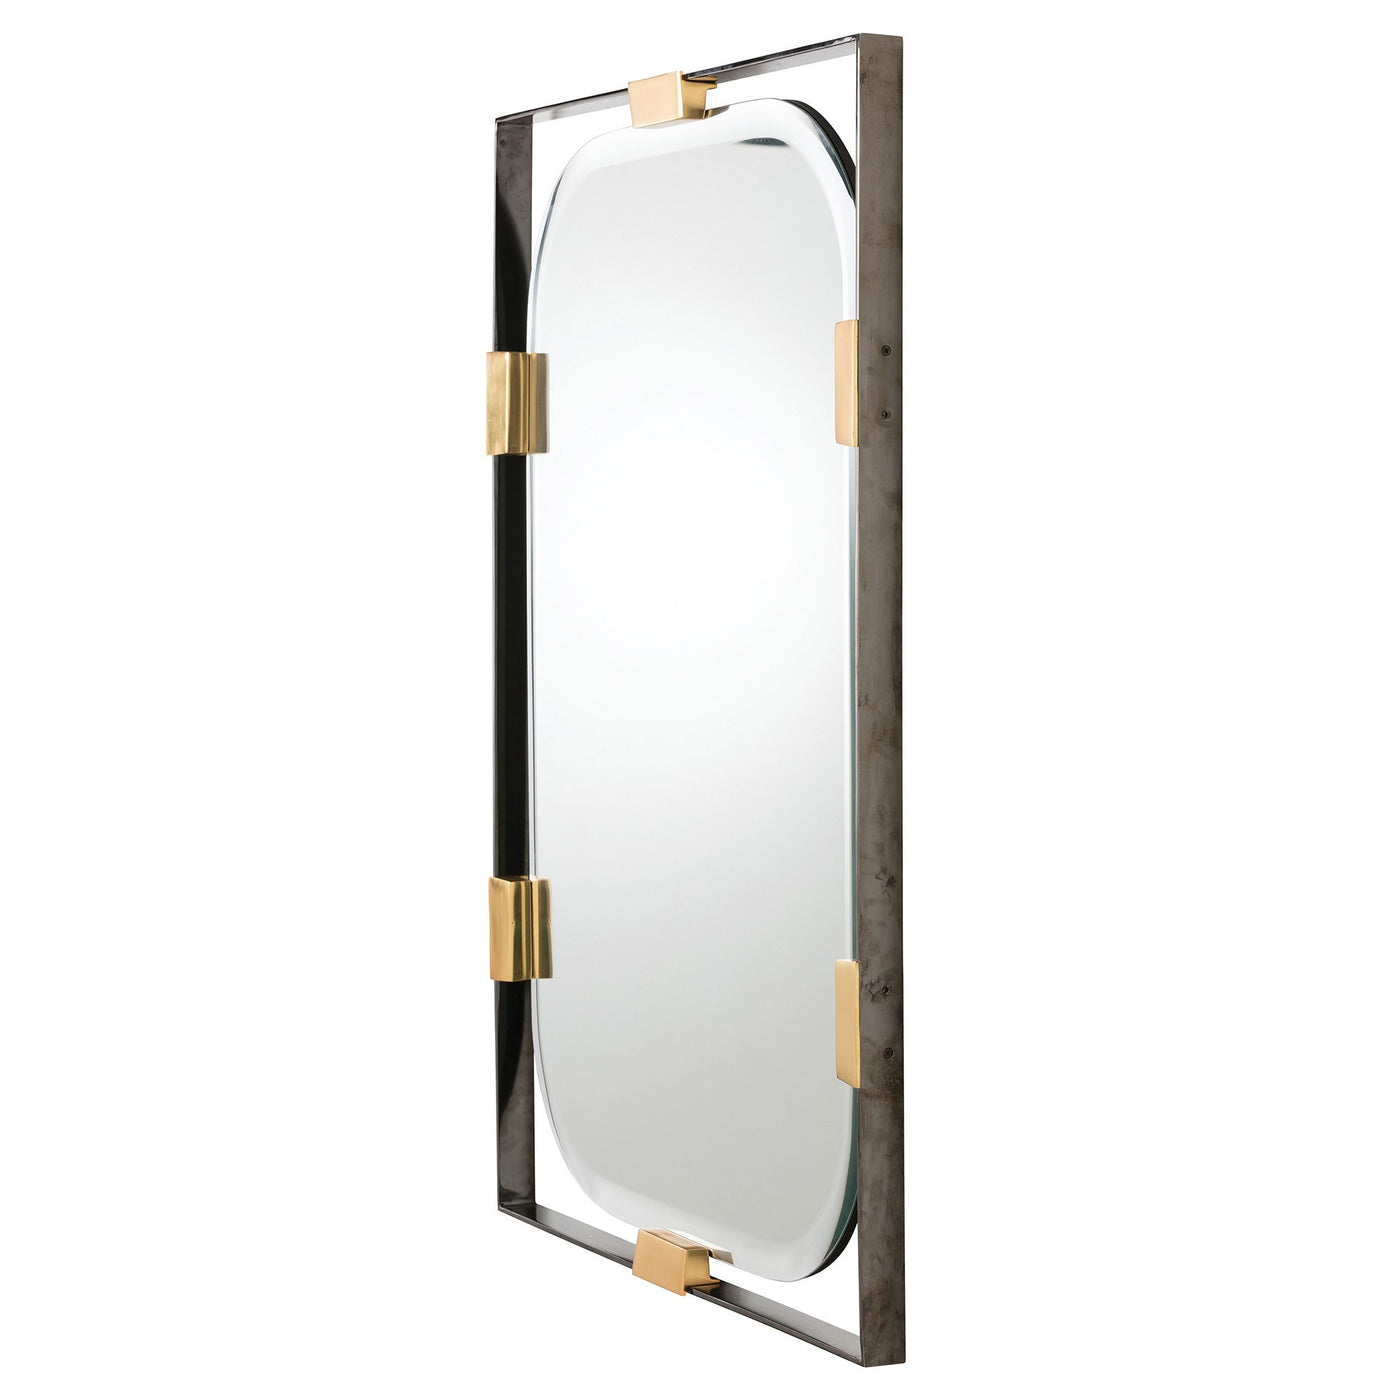 arteriors home frankie rectangular mirror DJ2049 mirrors, wall mirrors, long wall mirrors, modern bathroom mirrors, large wall mirrors, bedroom mirrors, unique mirrors, bathroom wall mirrors side view